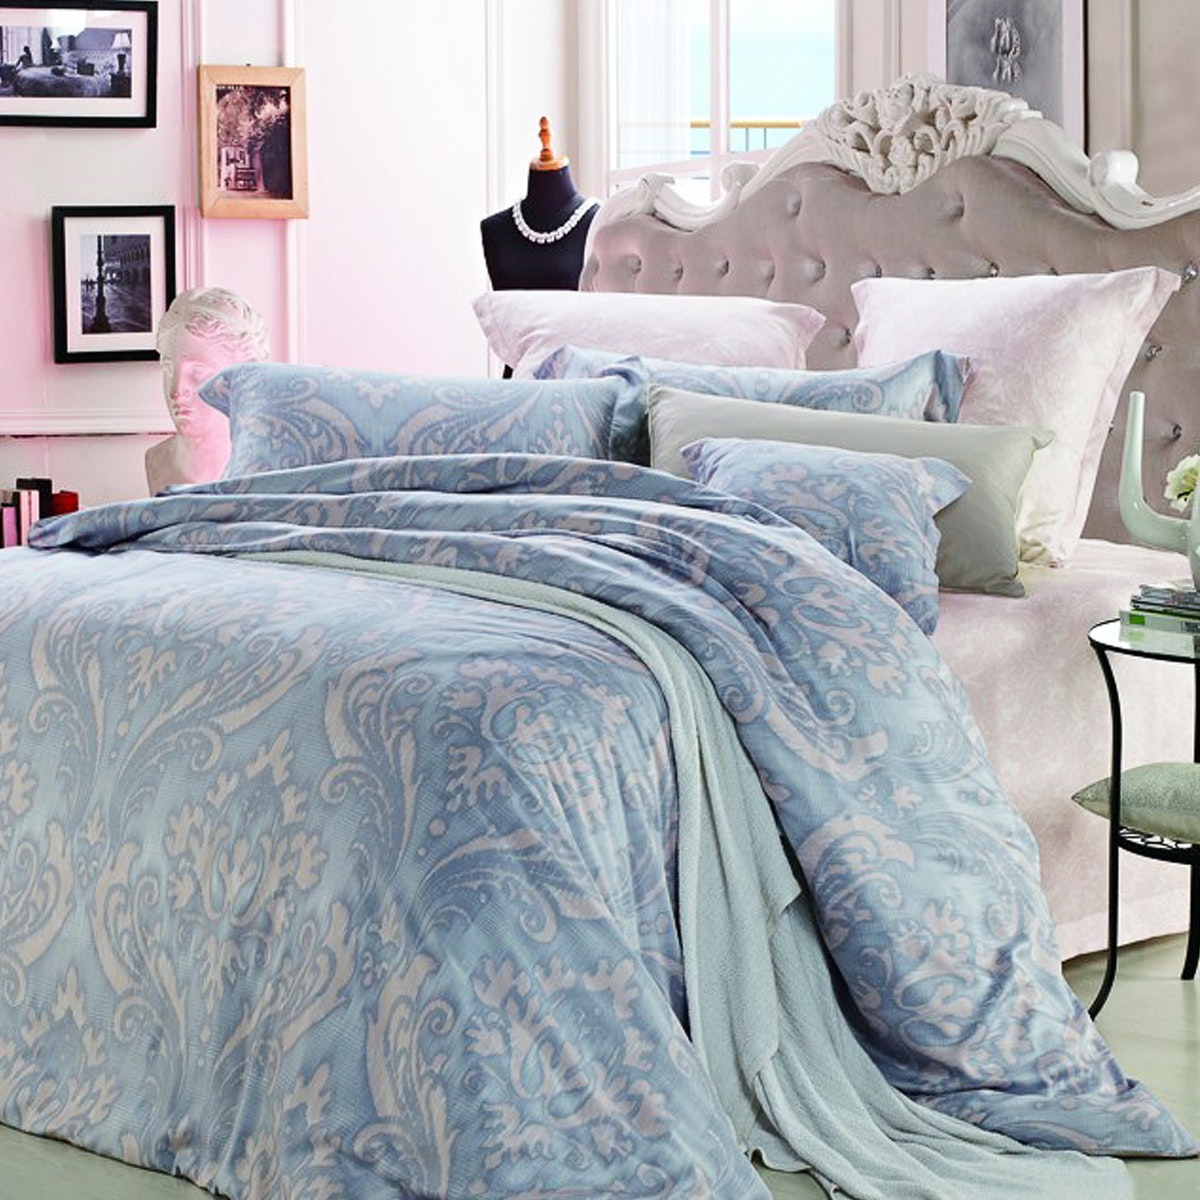 Palmerhaus Set Bedcover Verve Blue Bedding Set 180x200x40 cm